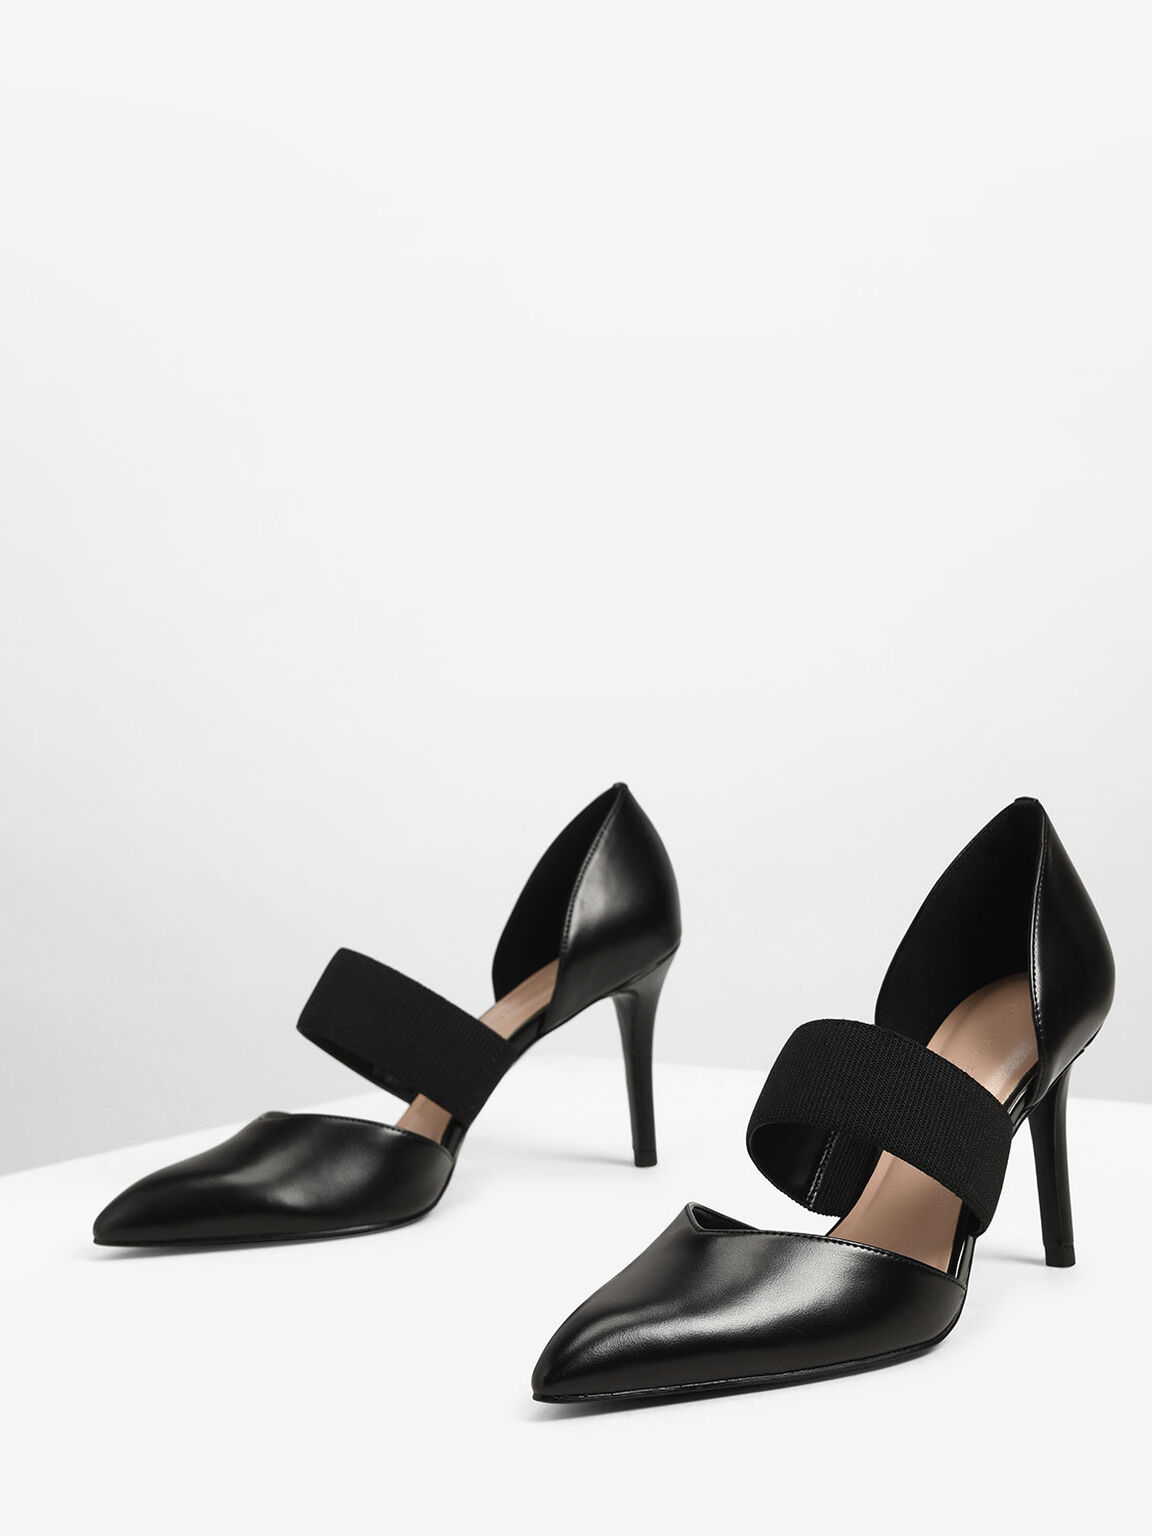 Ribbed Strap Pumps, Black, hi-res